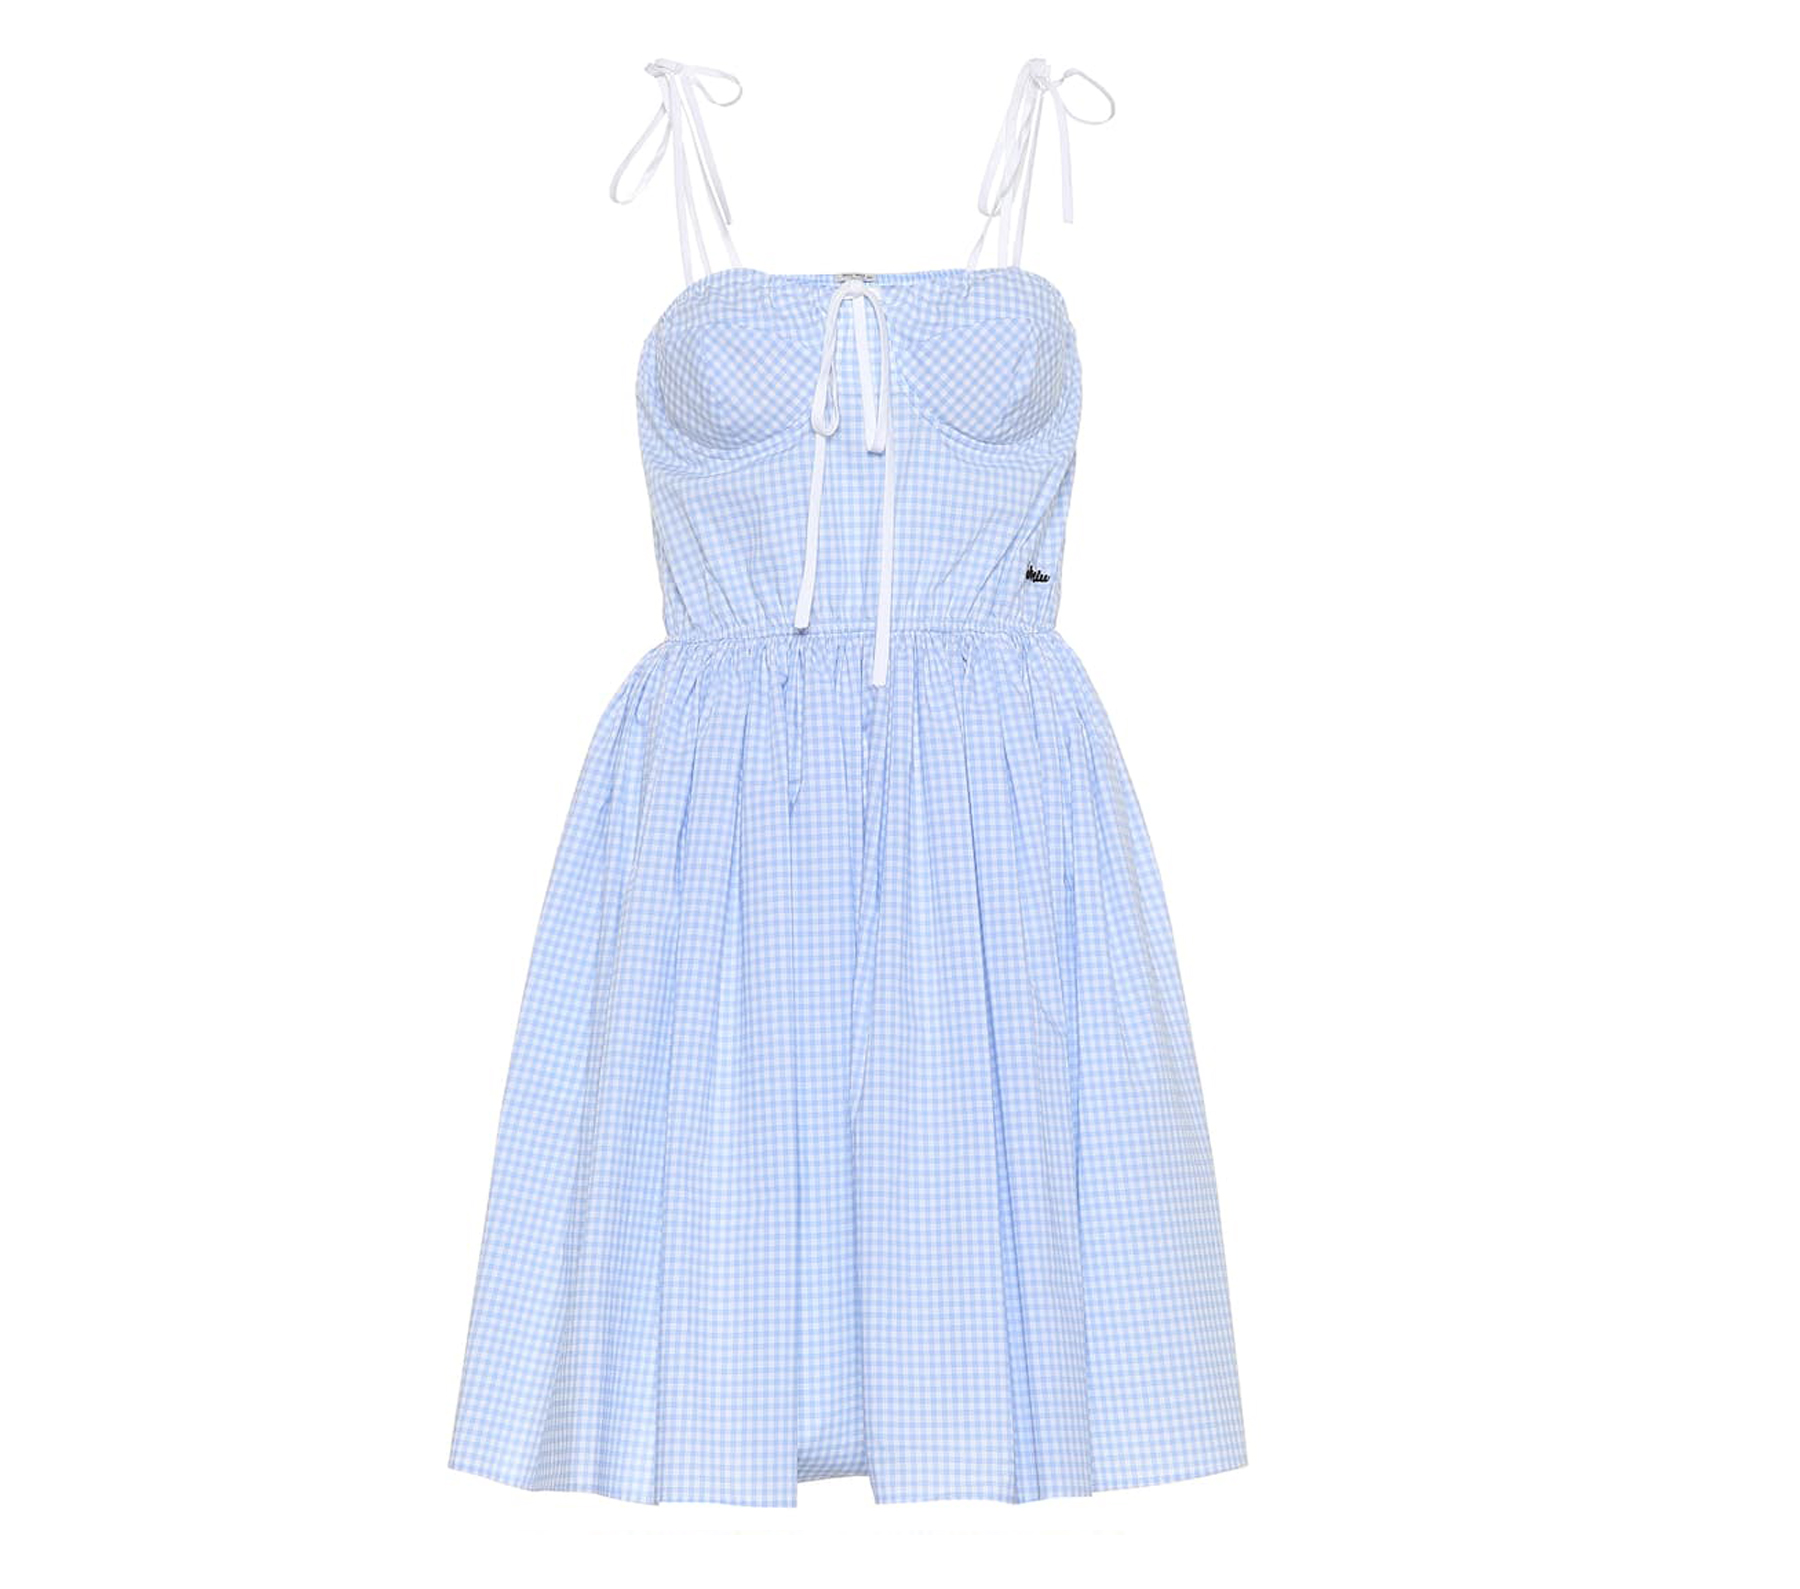 MIU MIU Gingham Cotton Dress